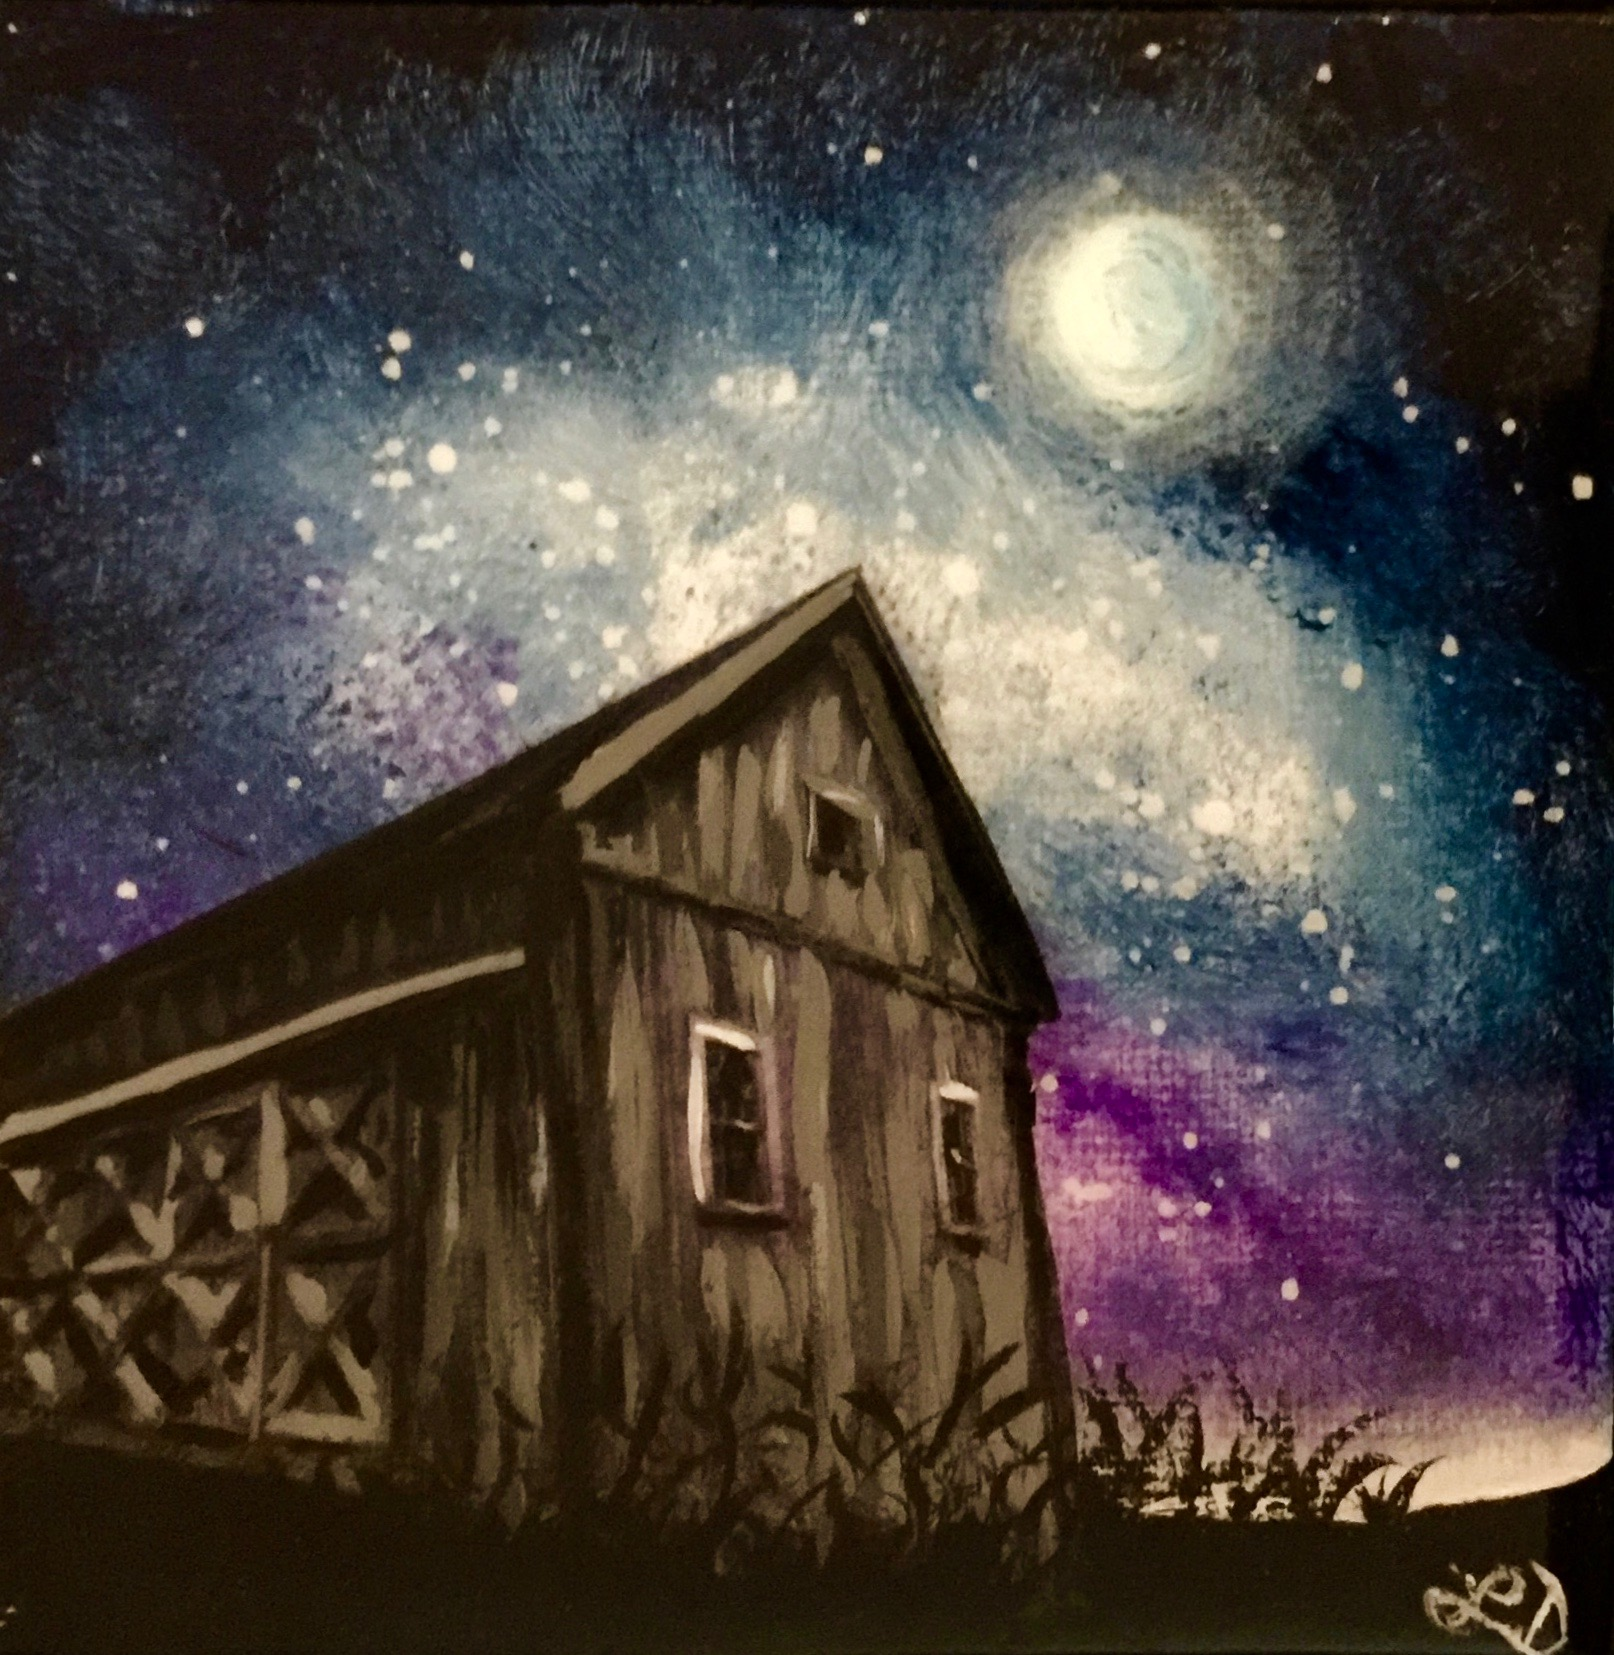 The Old Barn by Lisa D'Amico